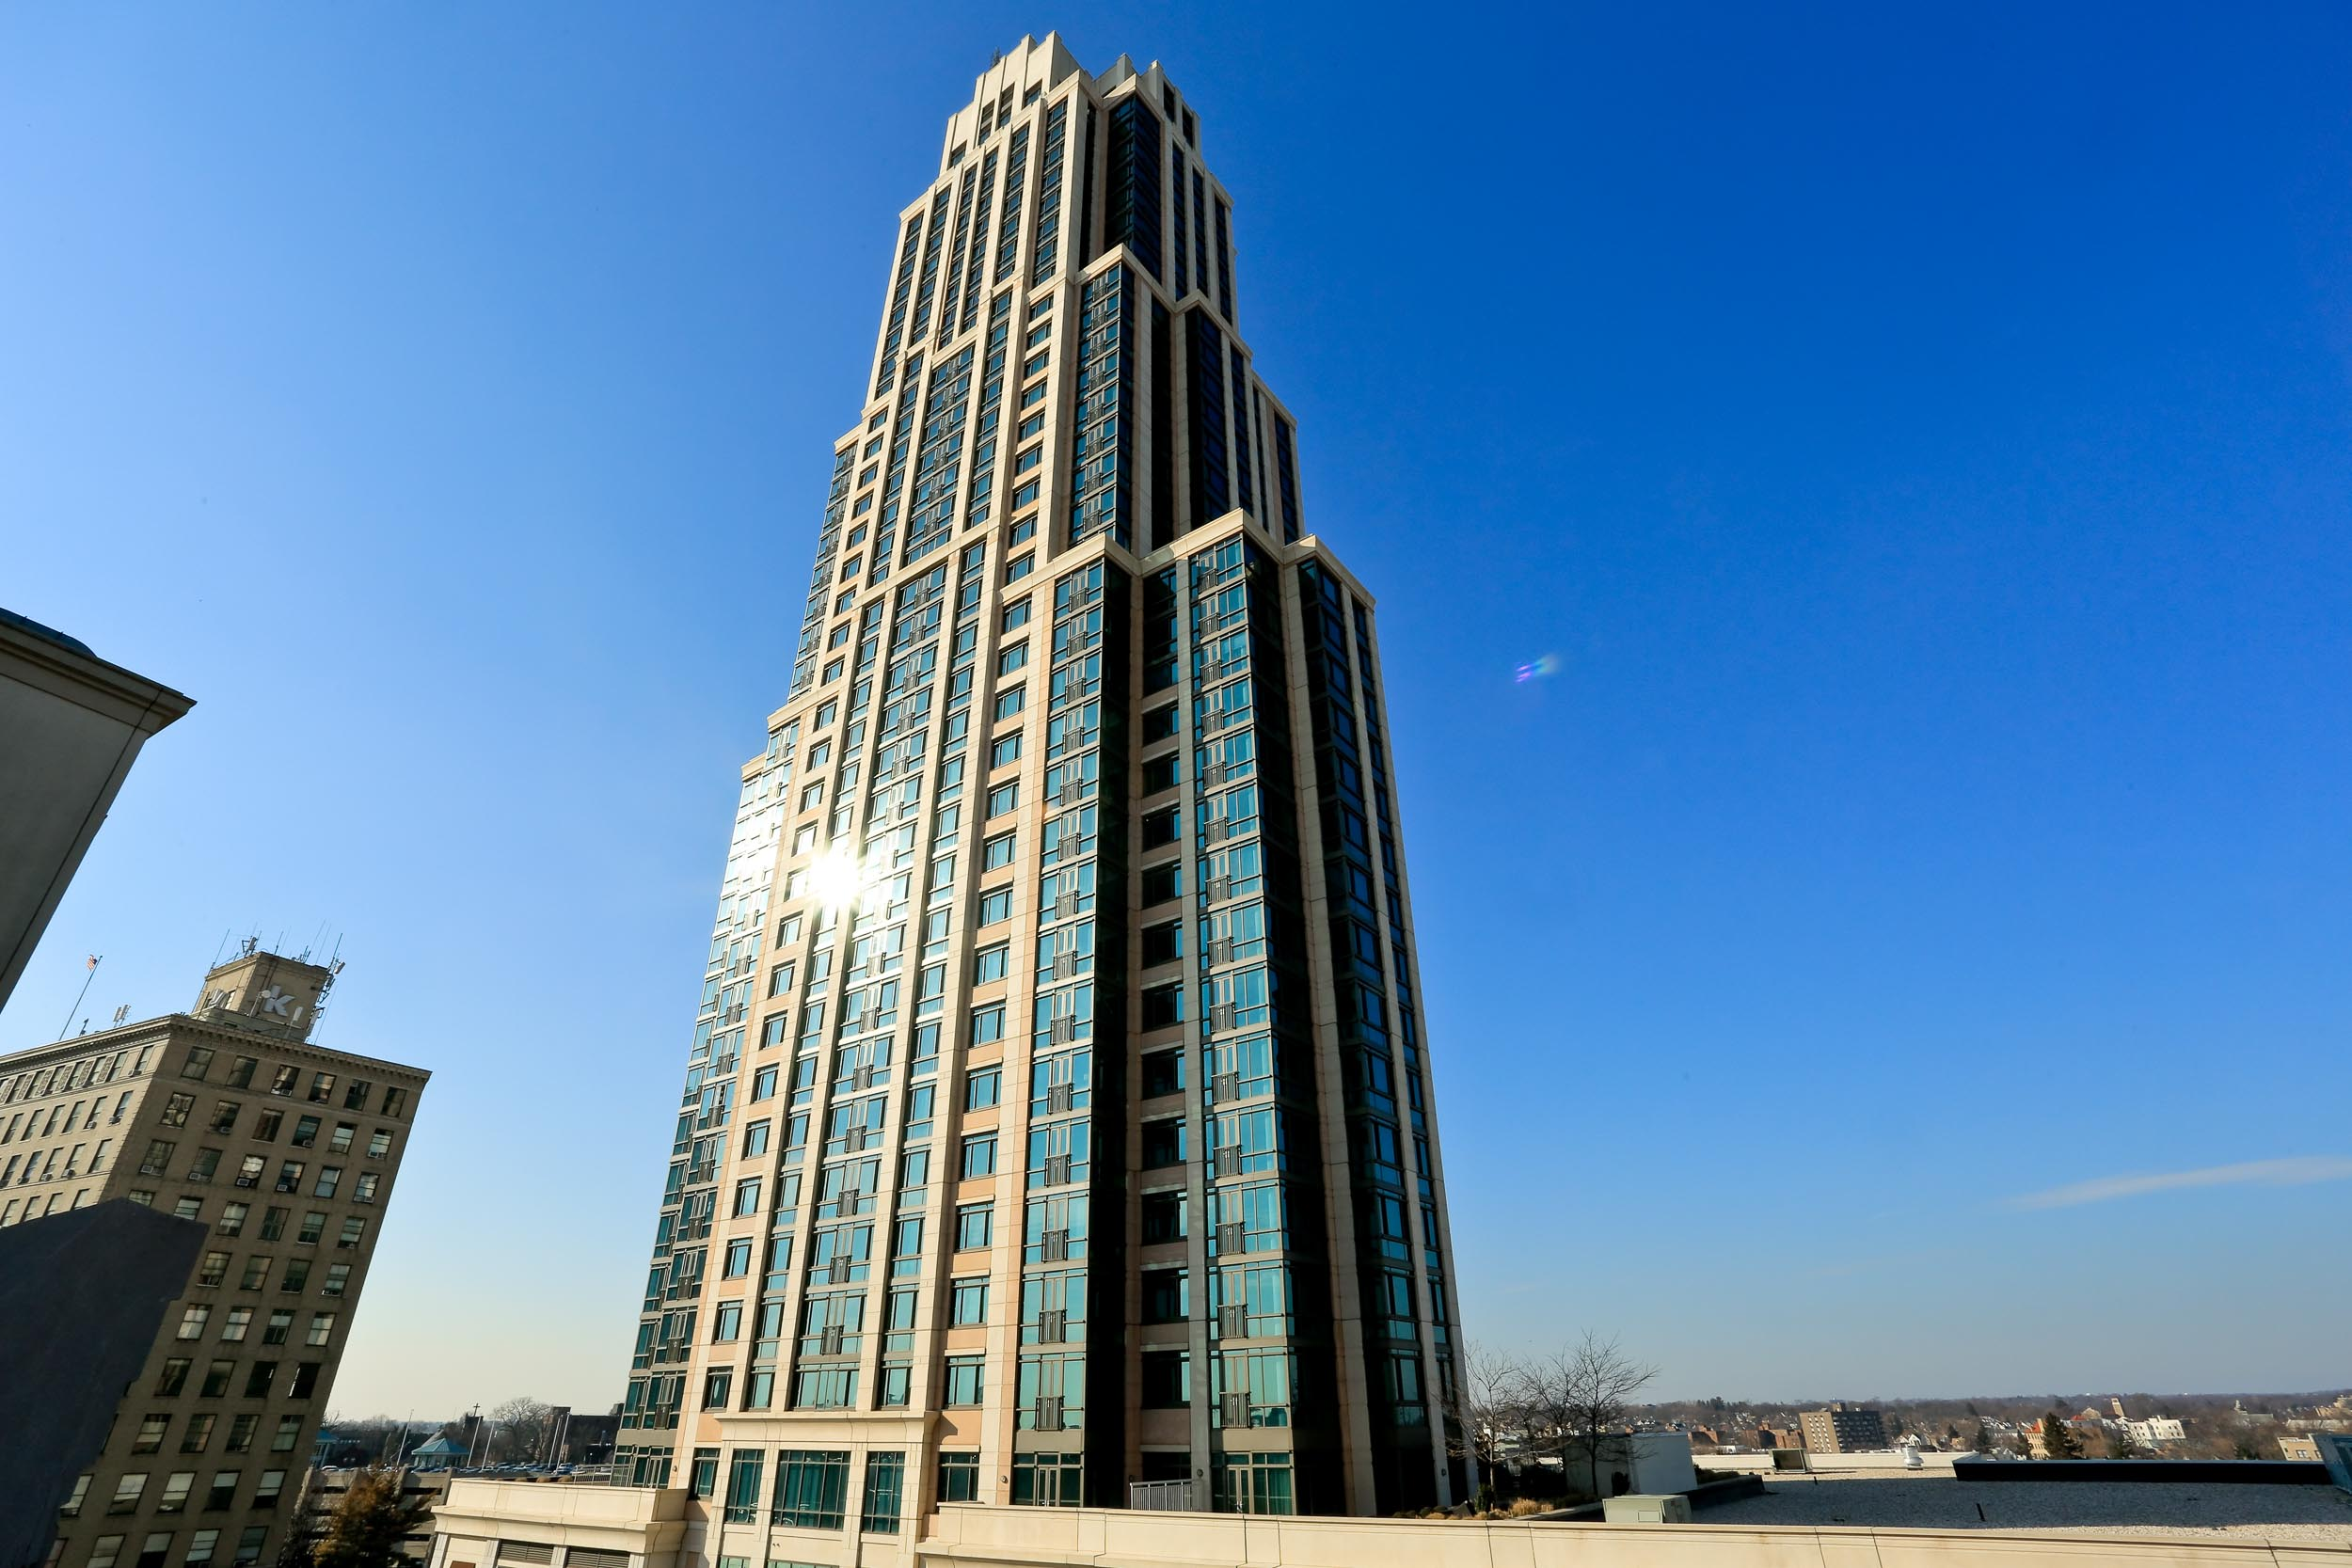 Trump Plaza New Rochelle offers both Luxury Condos to buy or rent. Located in New Rochelle.